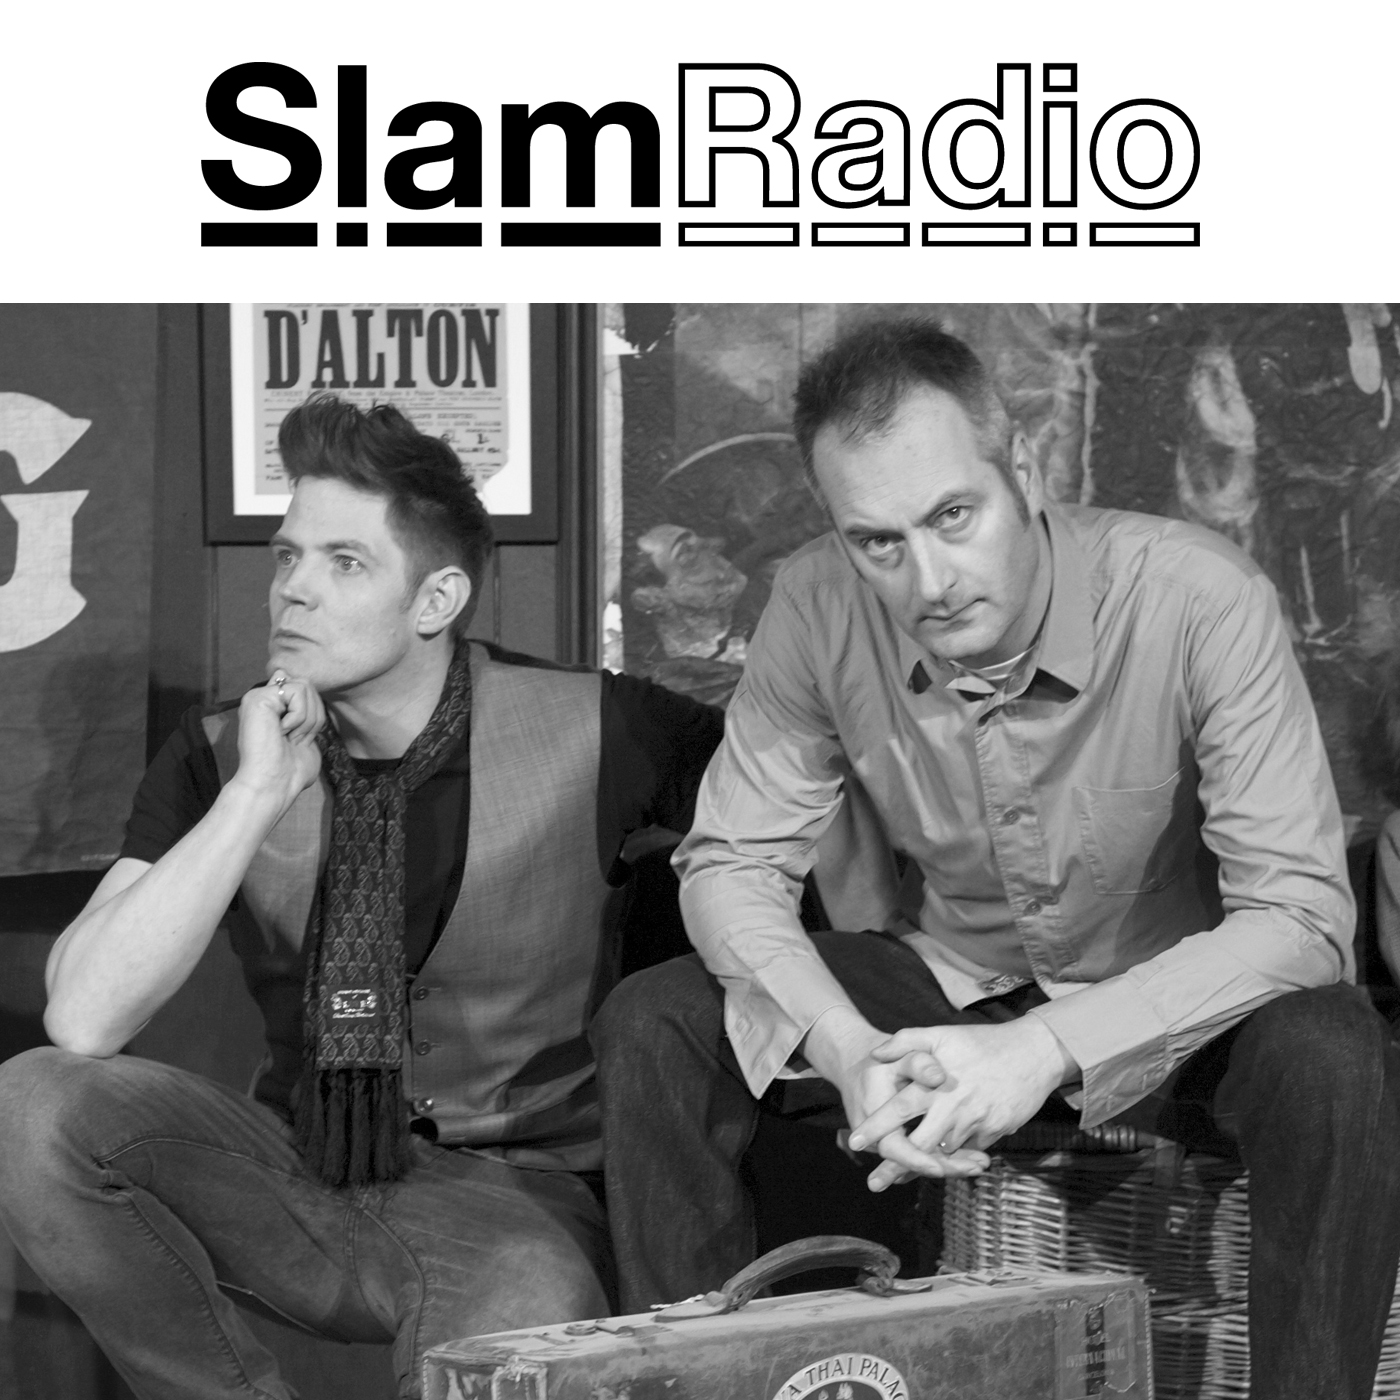 Delta Podcasts - Slam Radio by Soma Records (24.11.2017)